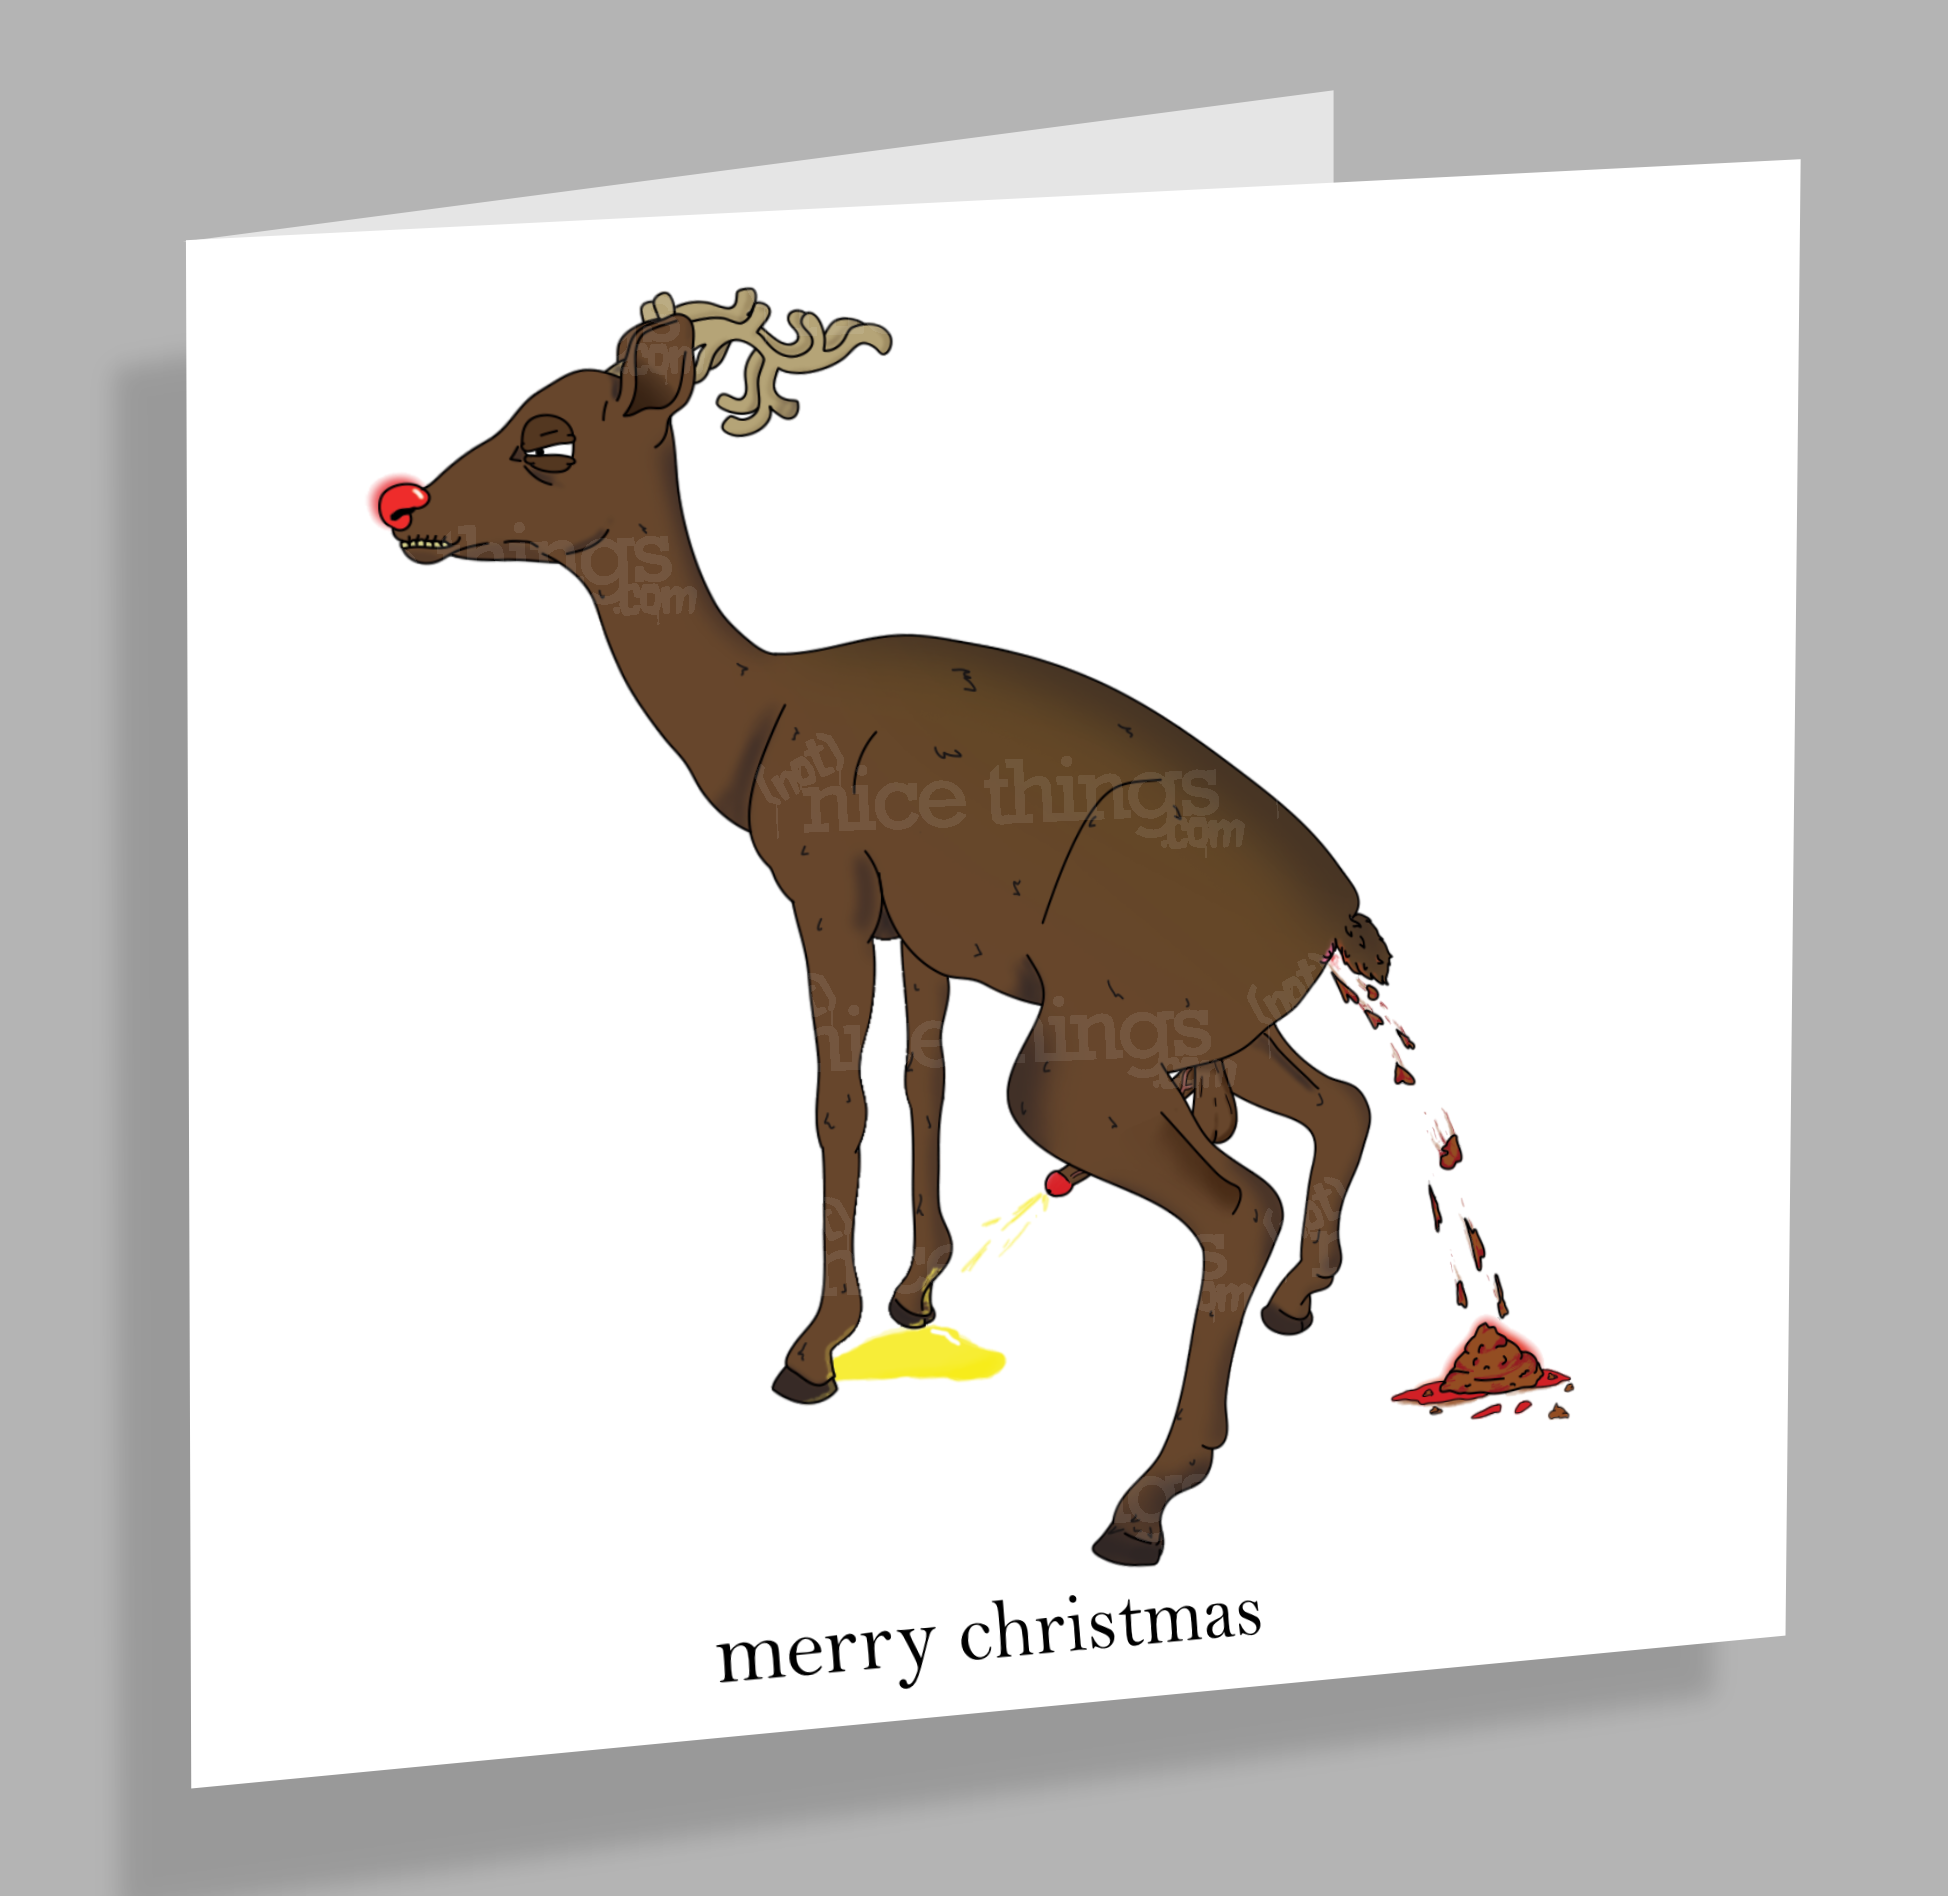 Not Nice Rudolph - Rude, Funny Christmas Card | Dirty Card | Cards for